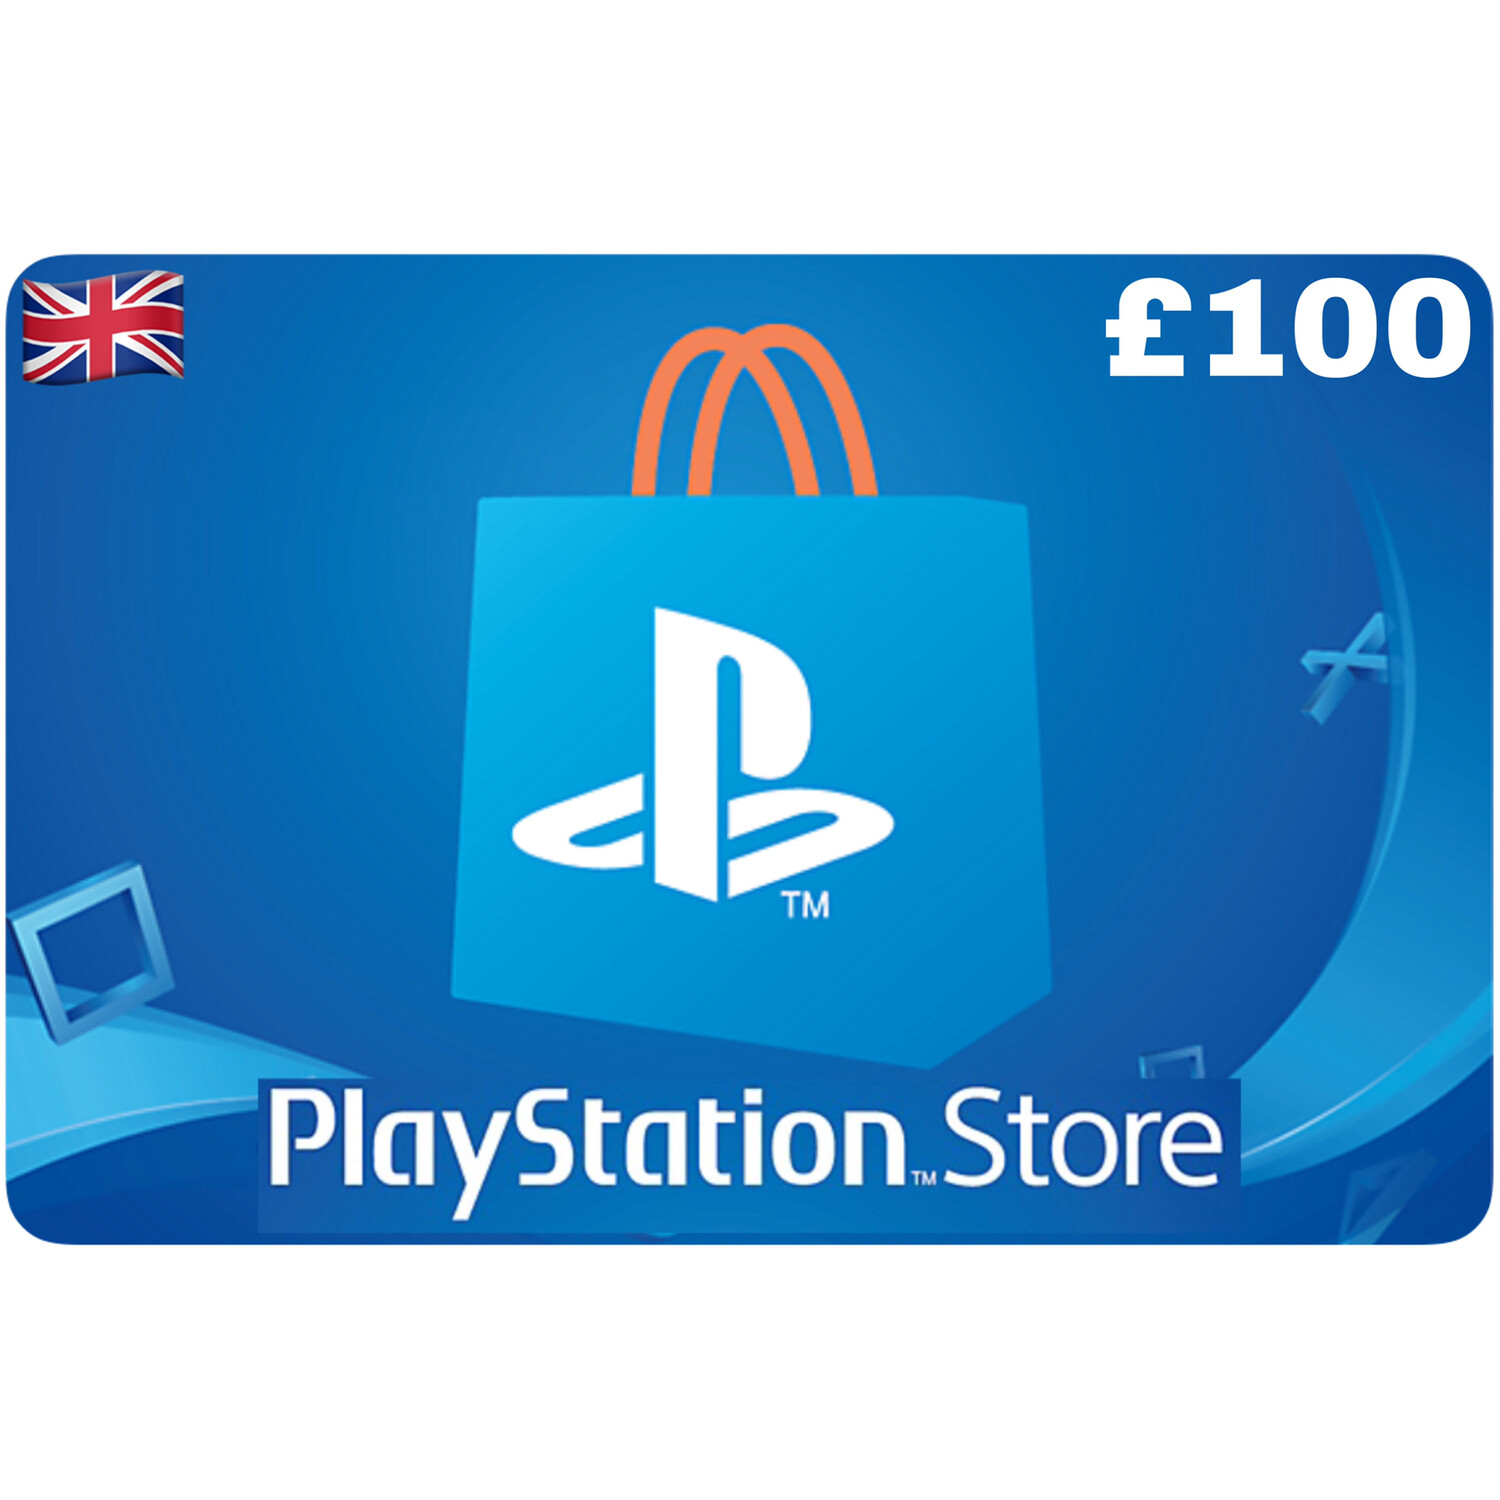 Playstation Store Gift Card UK £100